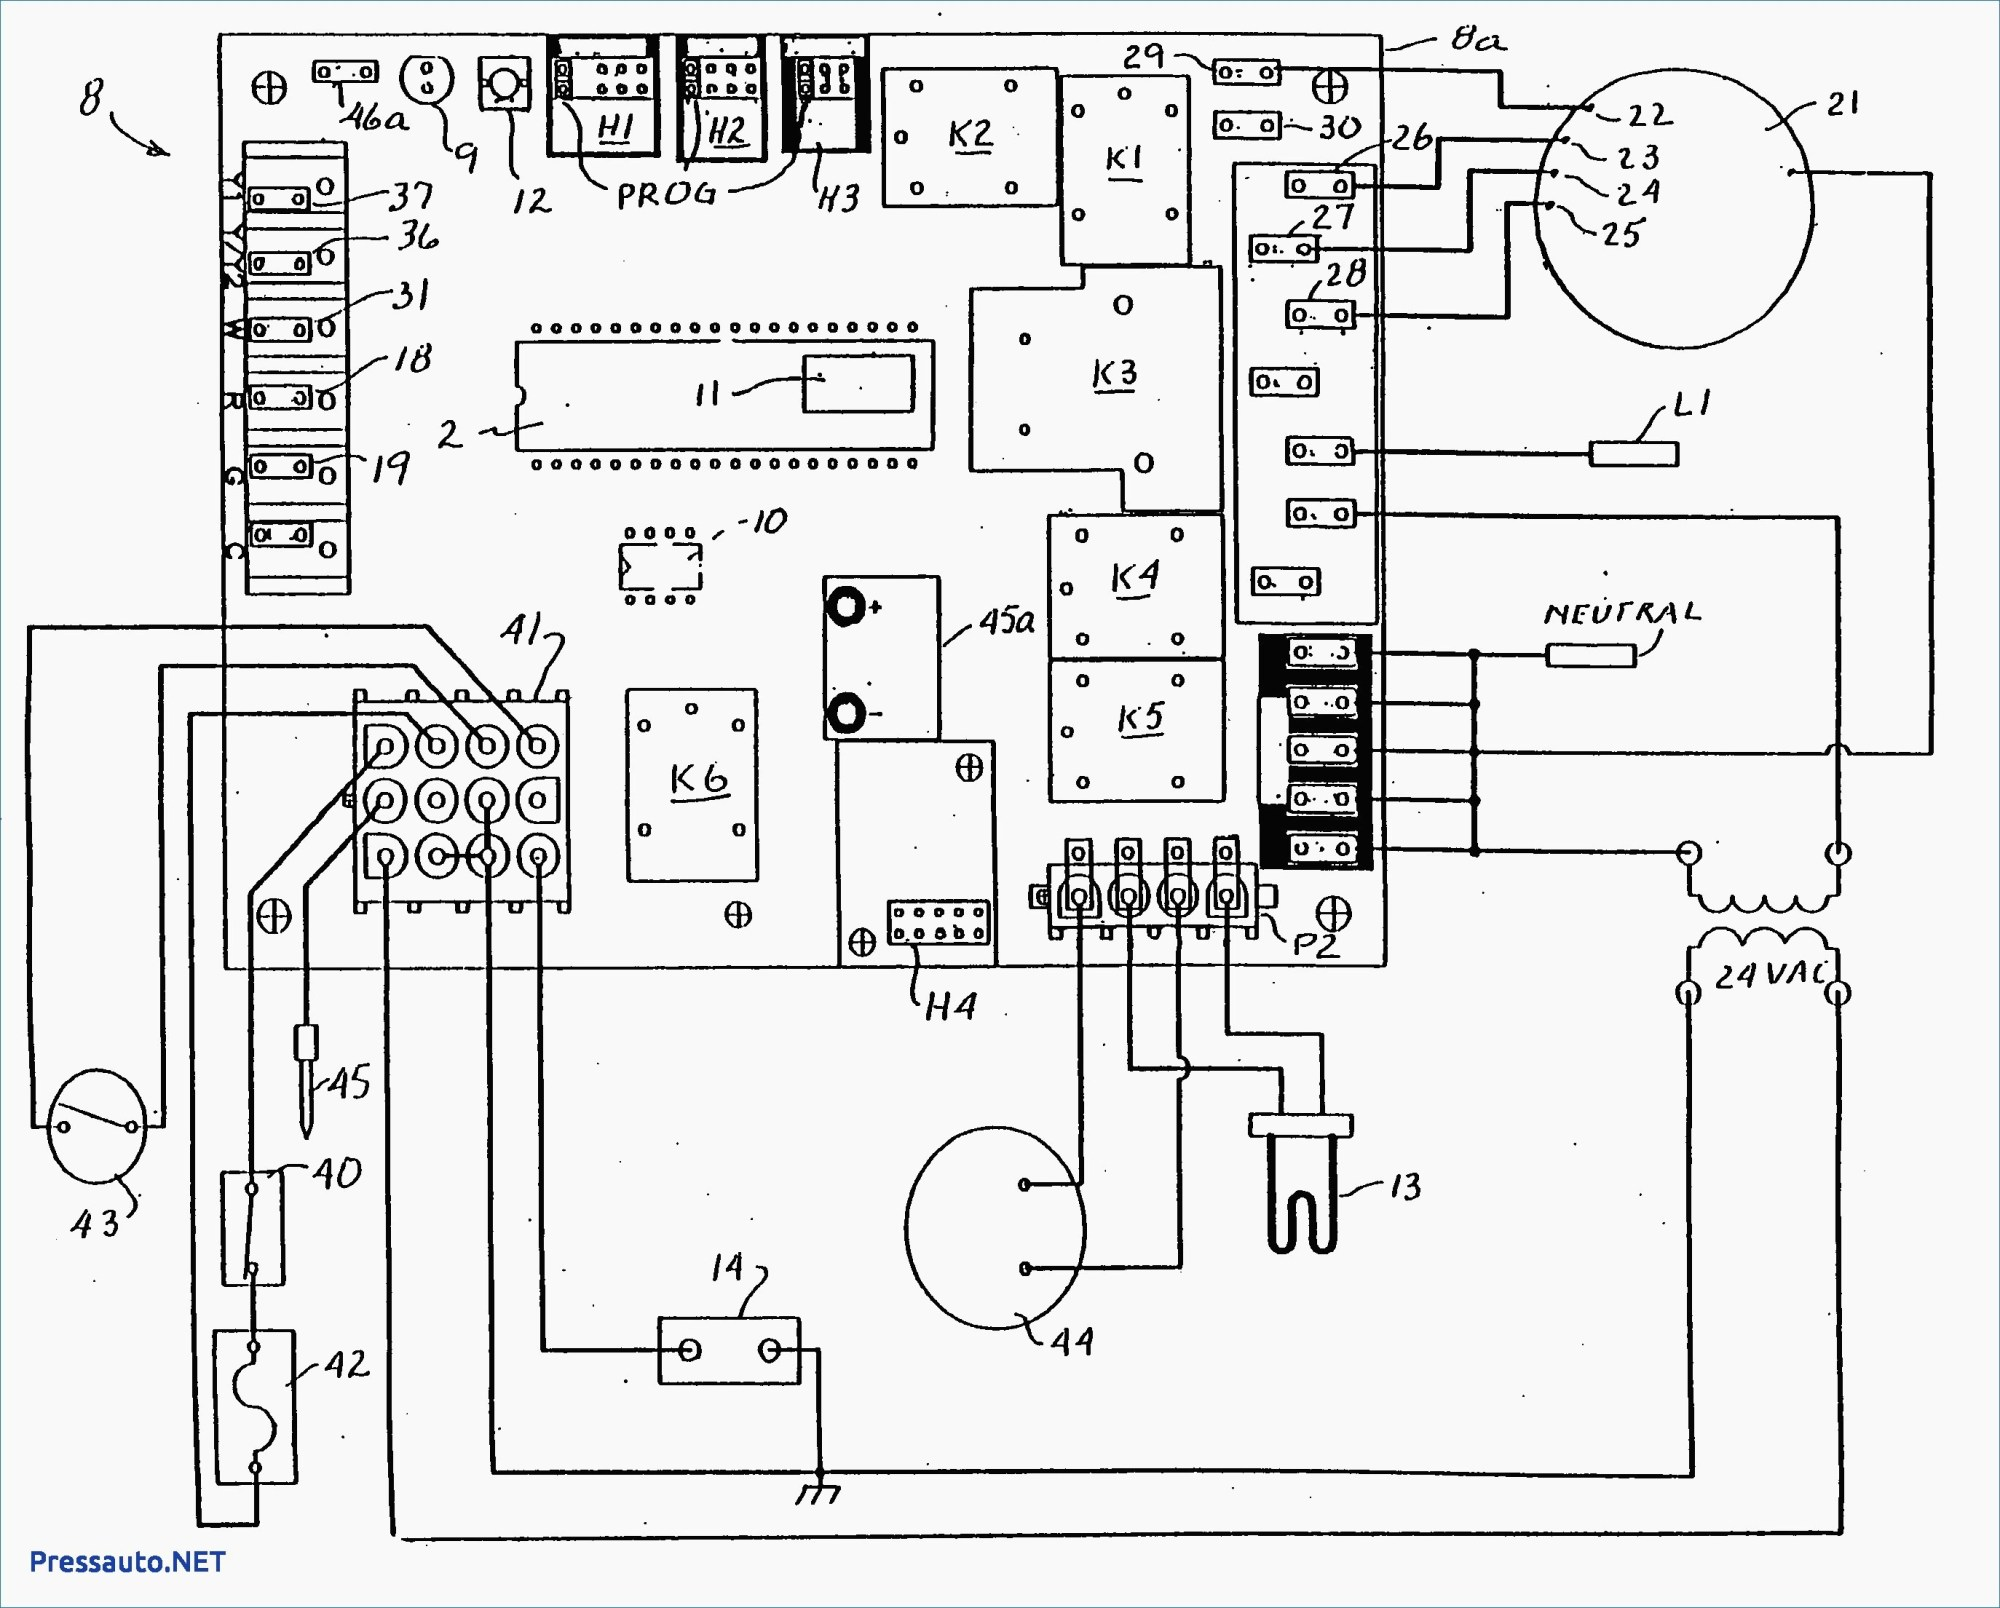 hight resolution of tork photocontrol 3000 wiring diagram 2101 tork 2001 photocell wiring tork photocell wiring diagram 120v